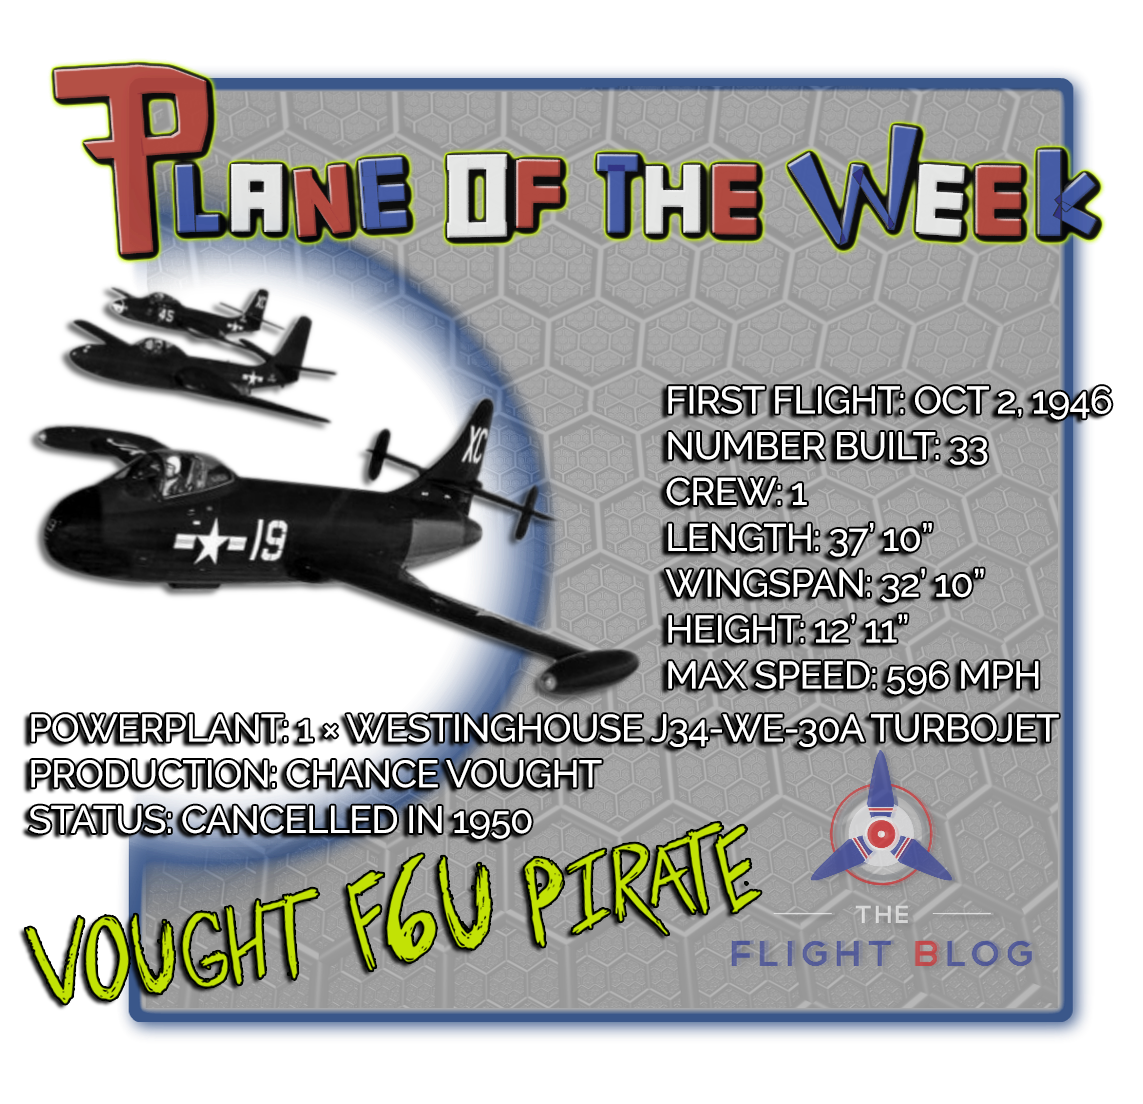 vought f6u, plane of the week, F6U pirate